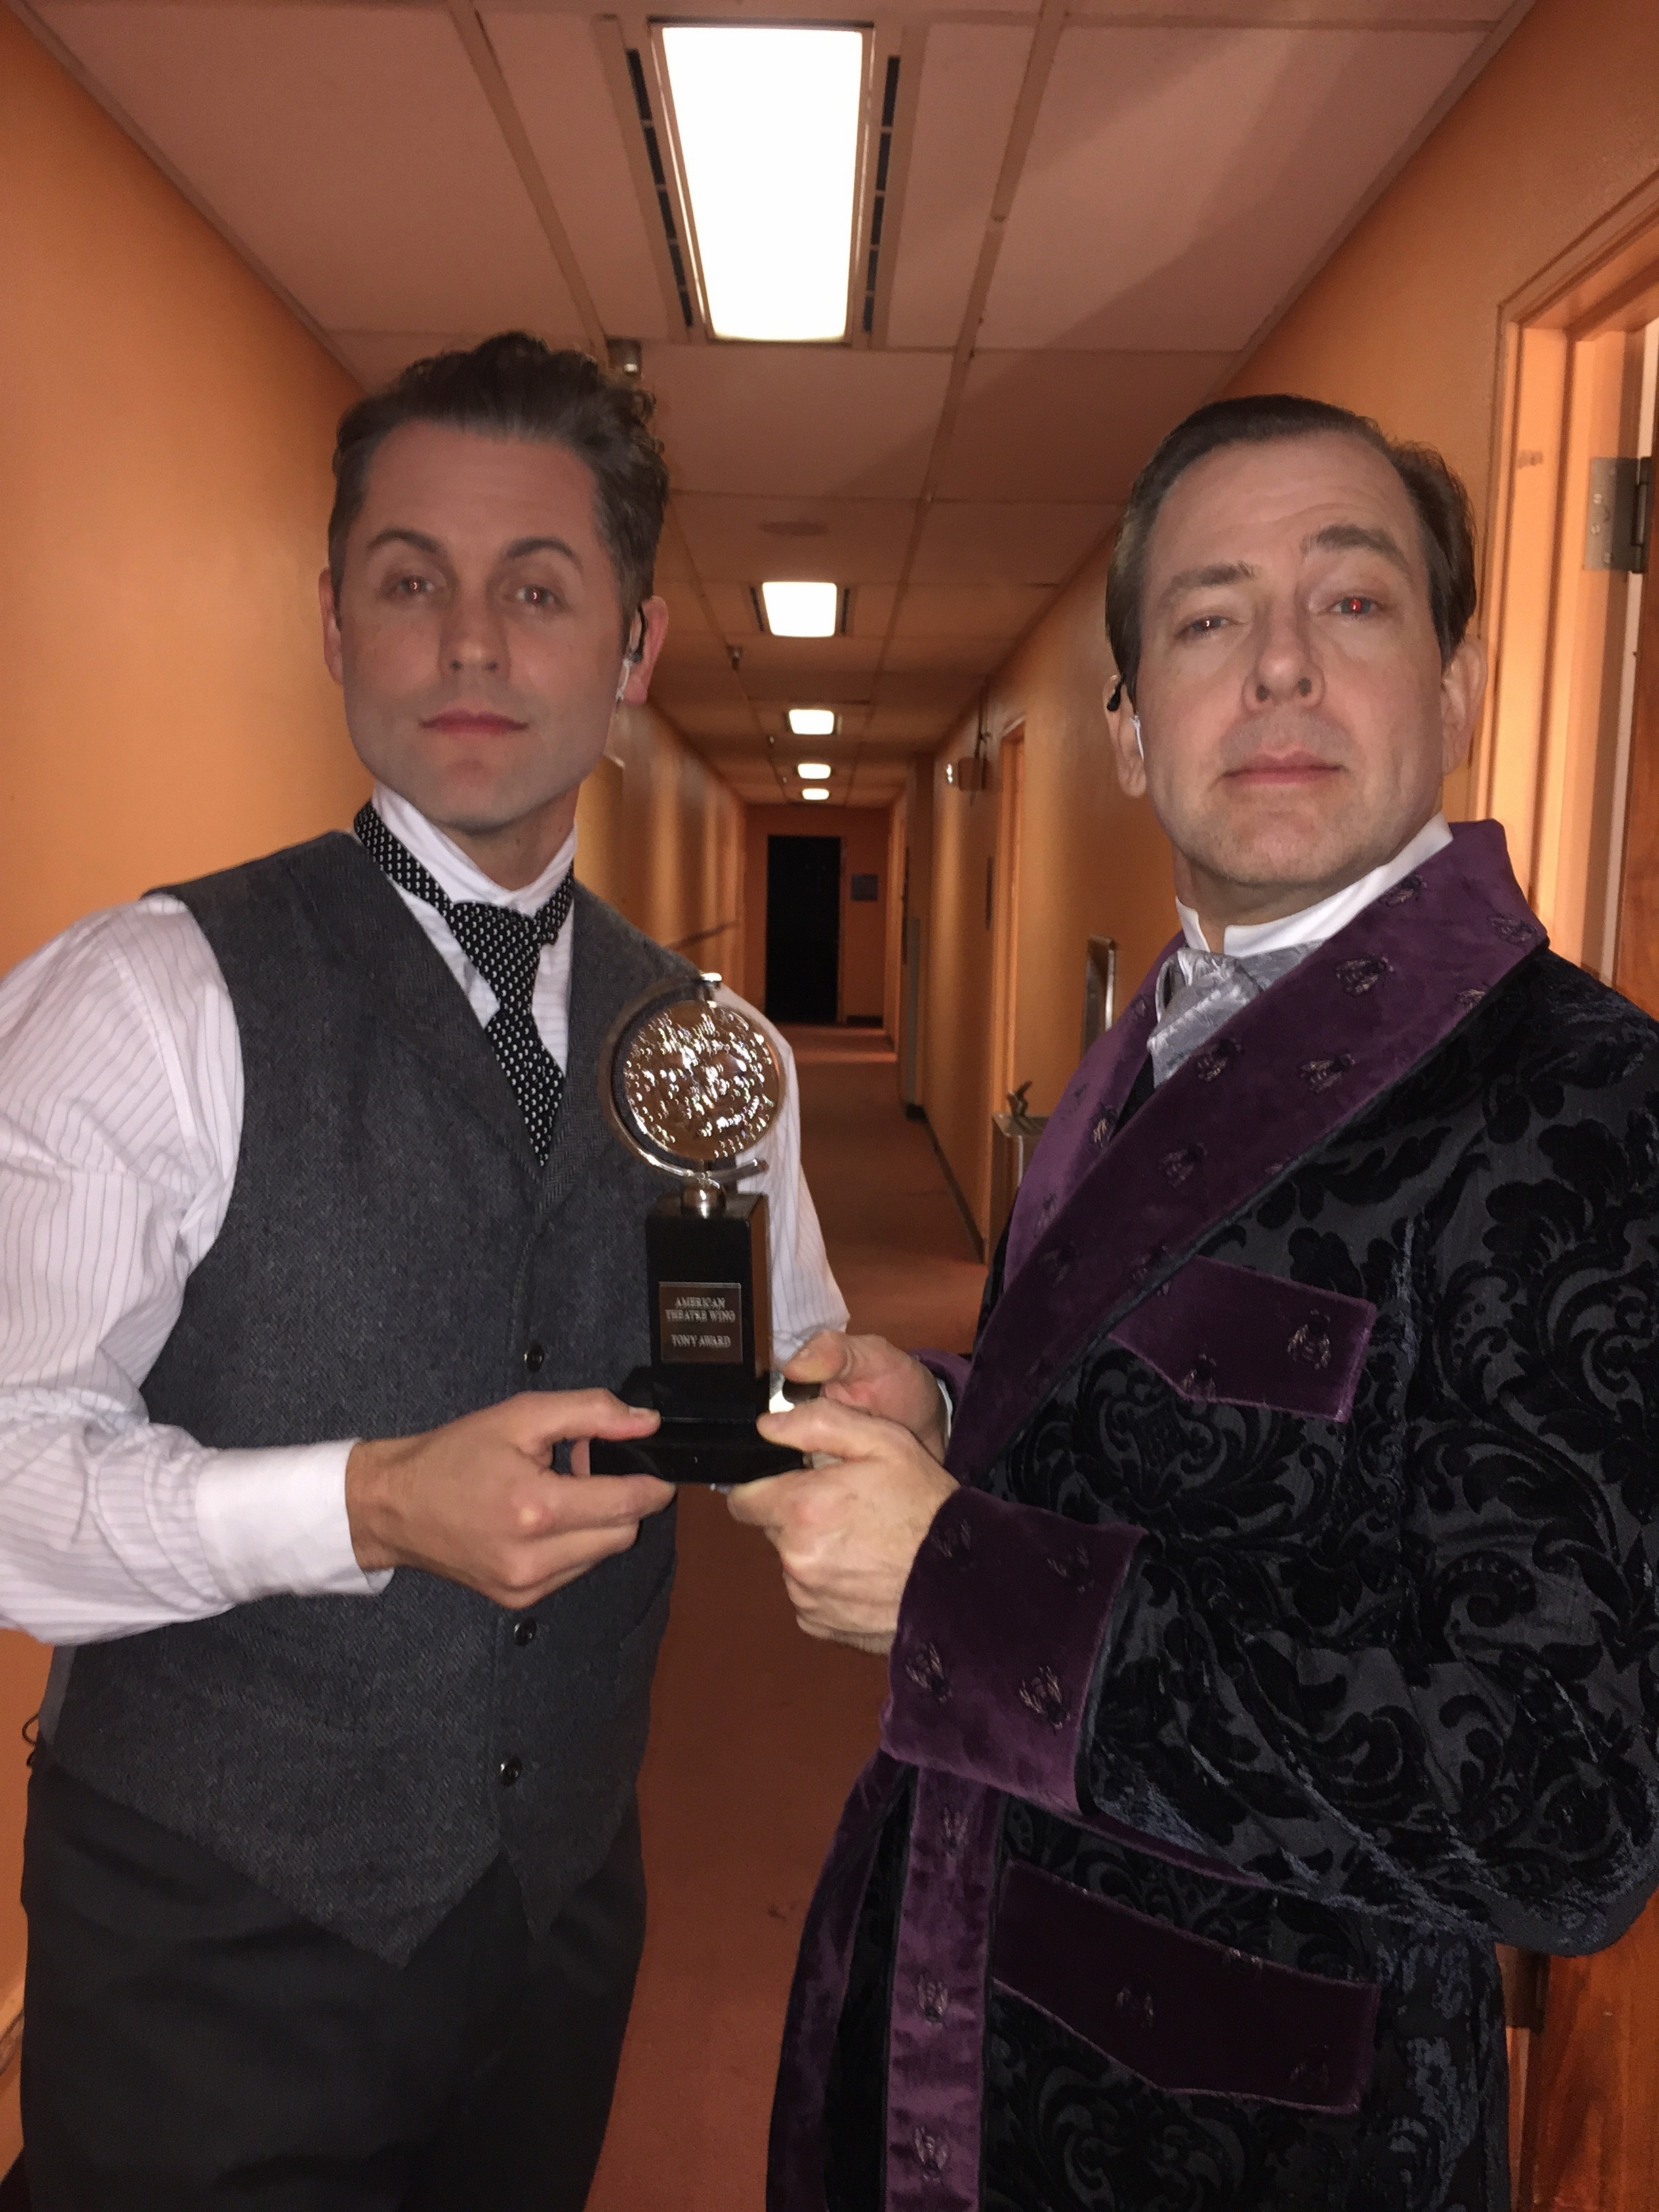 """Michael as """"Monty Navarro"""" and Greg Jackson as """"The D'Ysquiths"""" in  A Gentleman's Guide to Love and Murder  promo concert."""